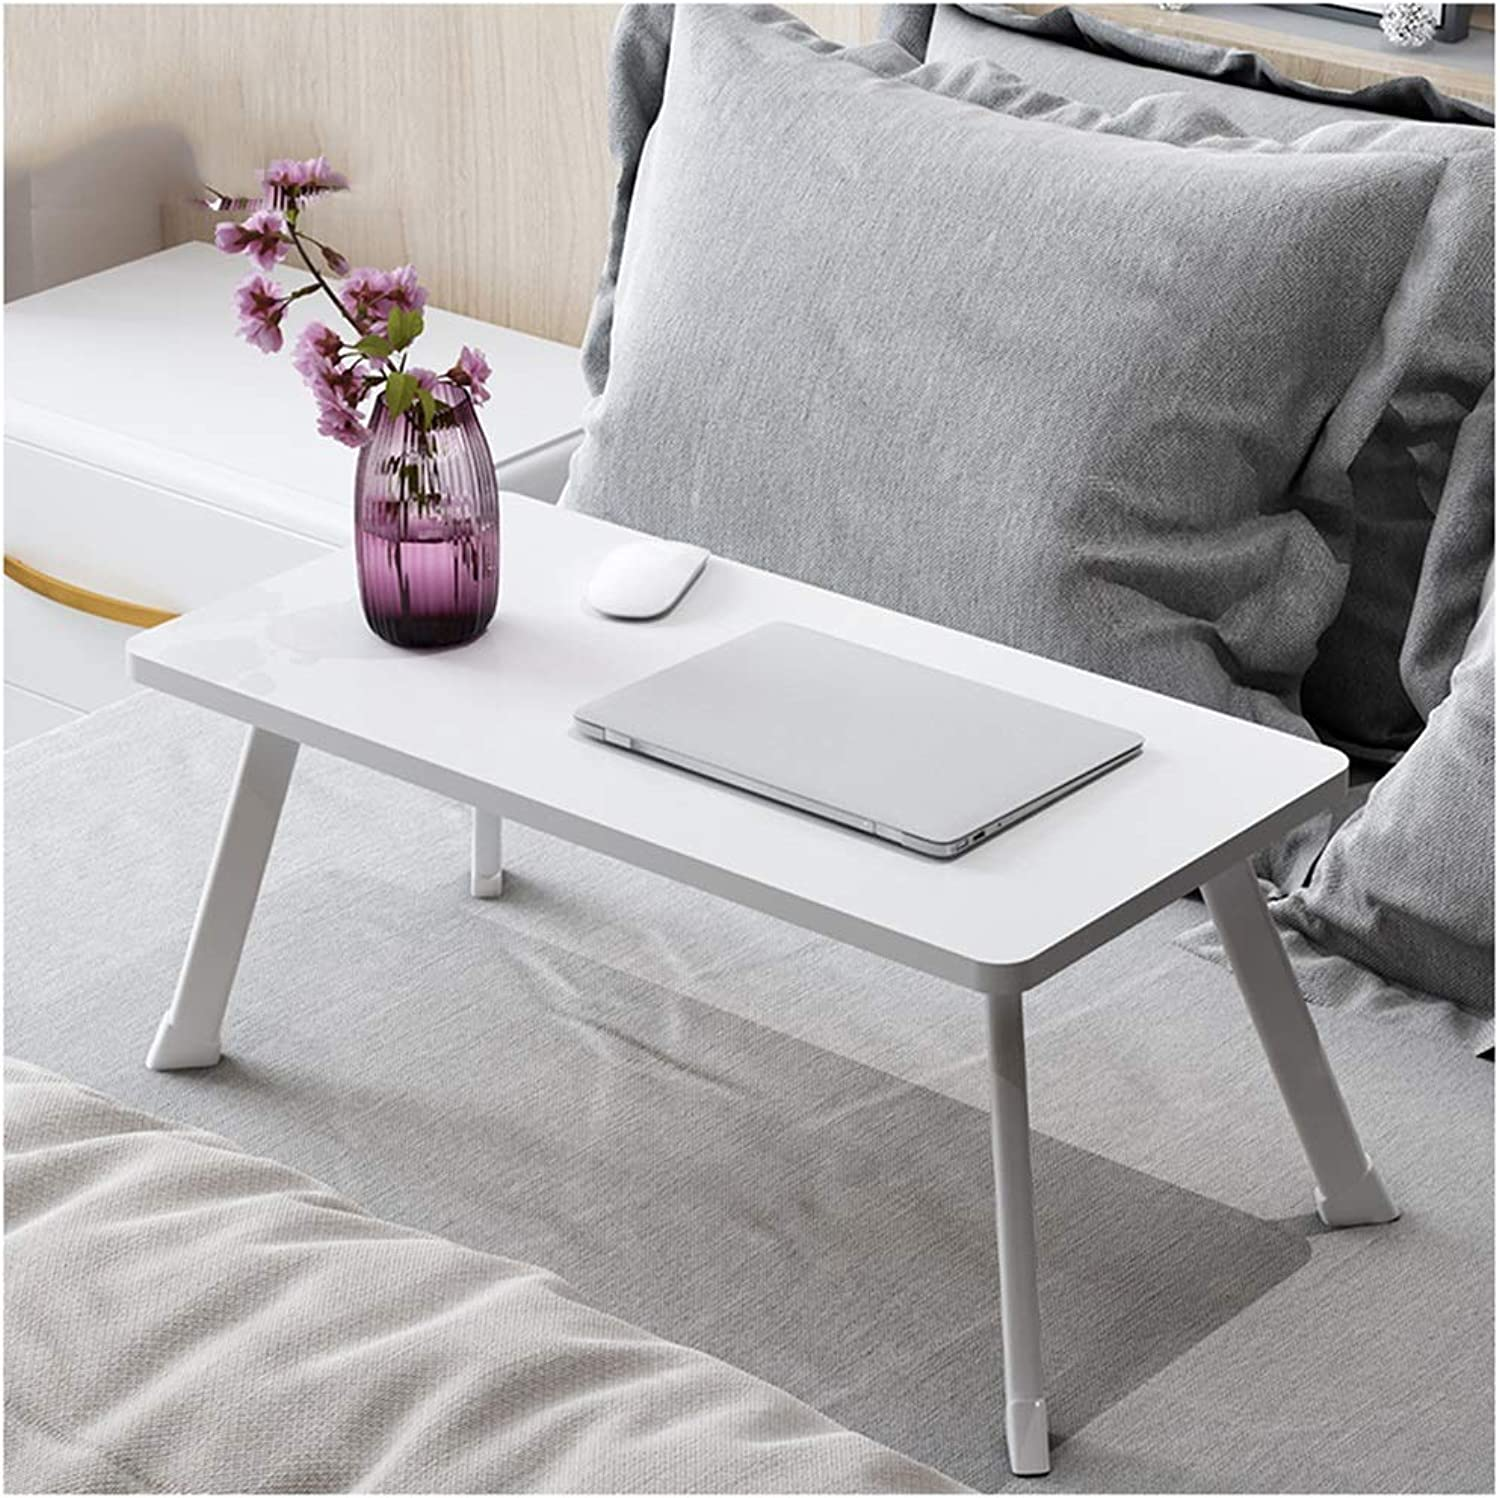 Folding Table Portable Folding Bed Computer Table Student Dormitory Lazy Study Notebook Small Desk (color   White)